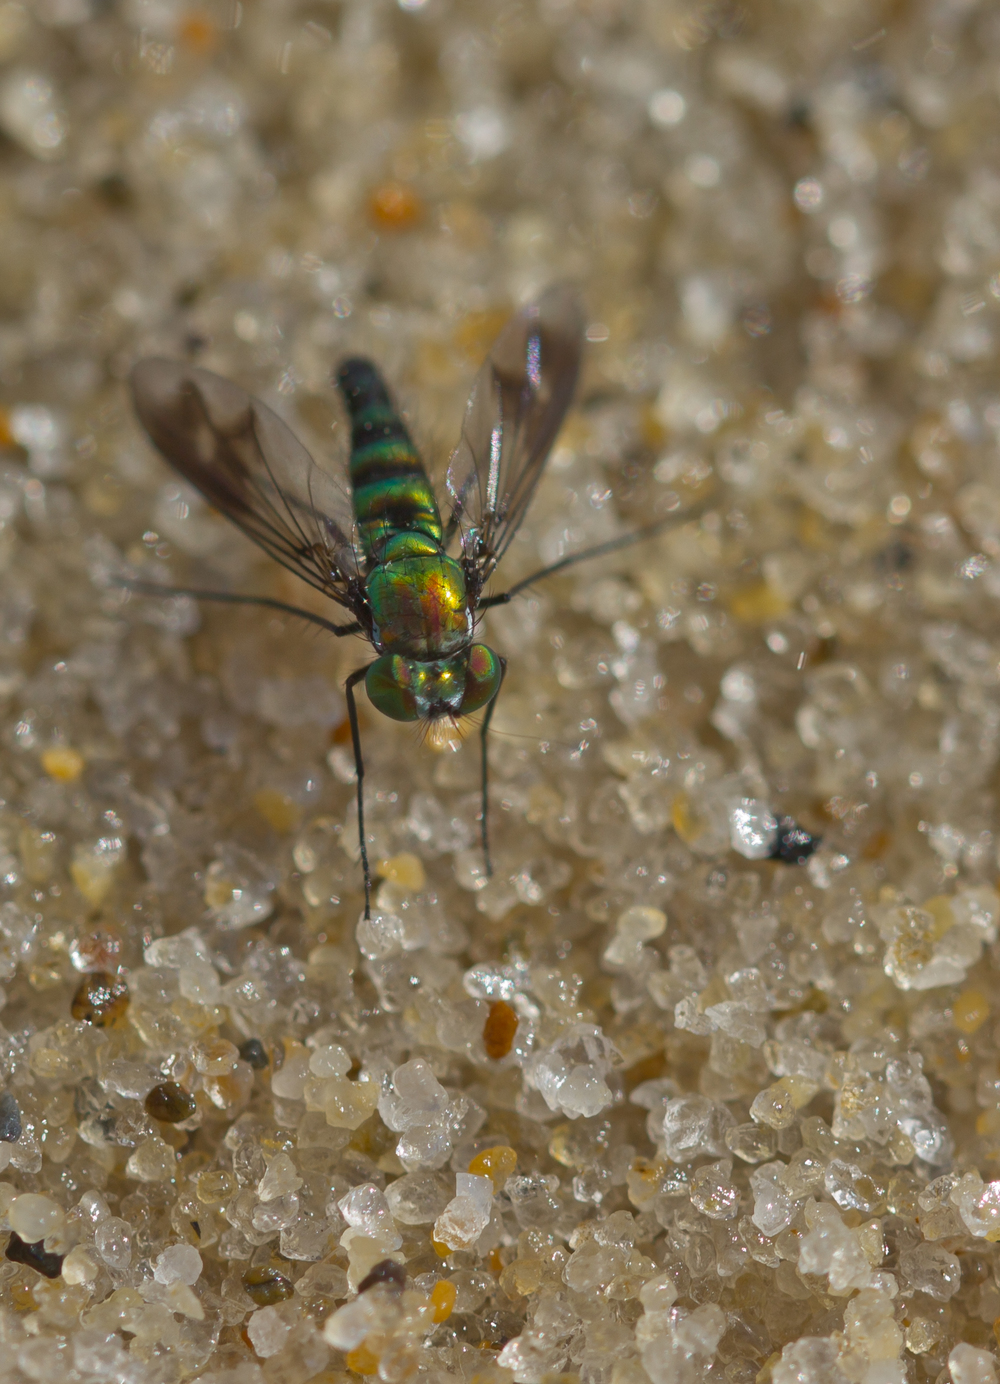 Long Legged Fly - Family: Dolichopodidae